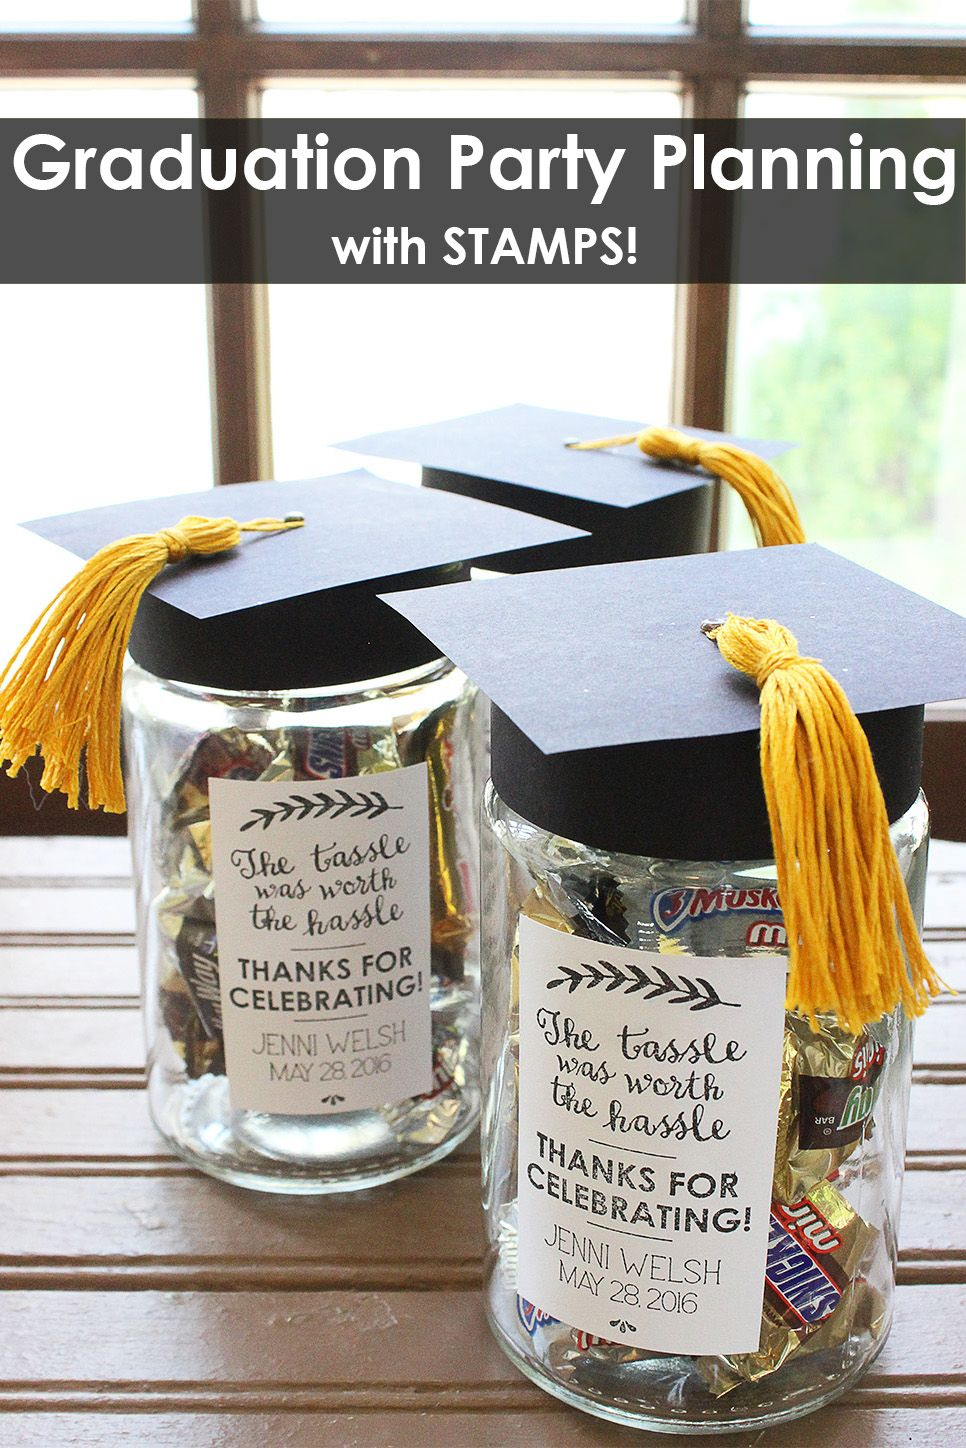 Graduation Party Planning with Stamps Invitations